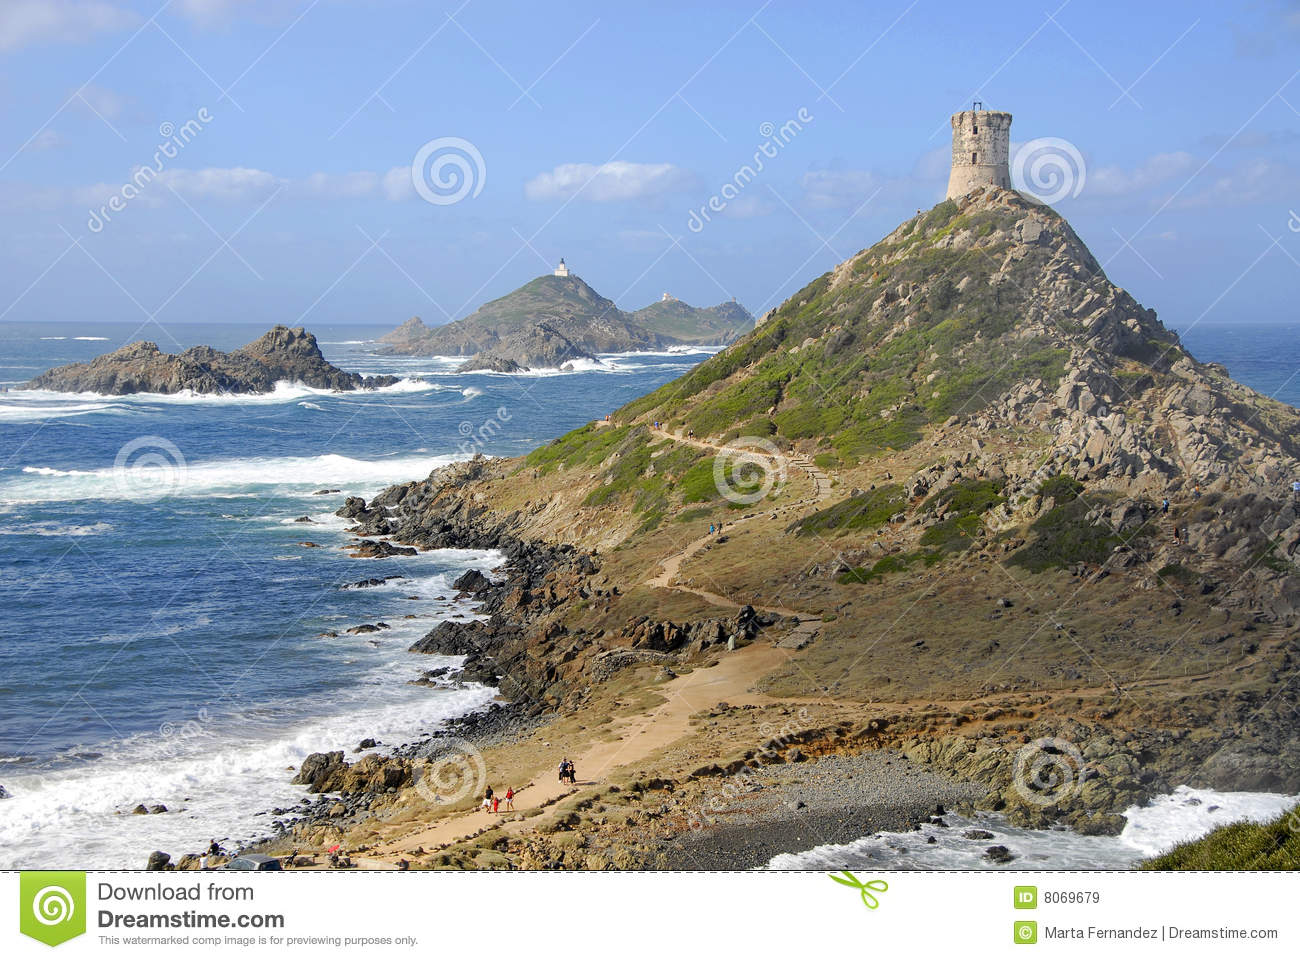 Ajaccio France  City pictures : Tour De La Parata, Ajaccio, Corsica, France Royalty Free Stock Images ...